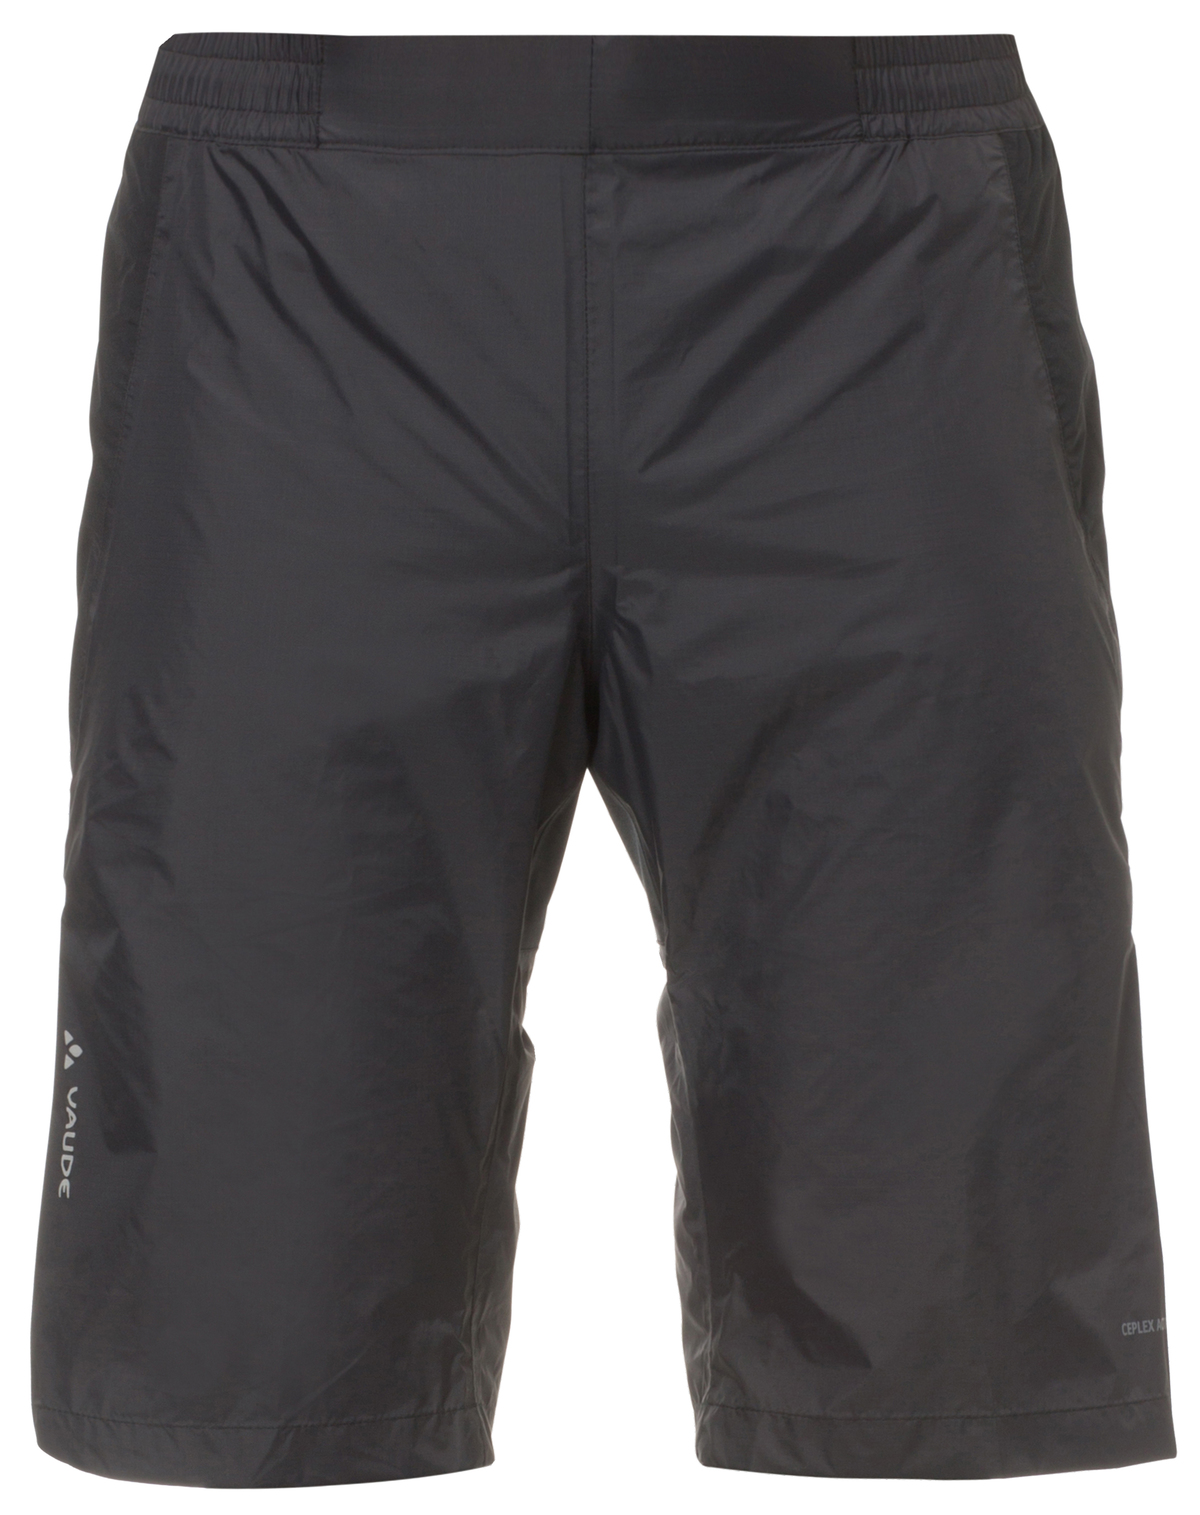 VAUDE Men´s Spray Shorts III black Größe XL - schneider-sports